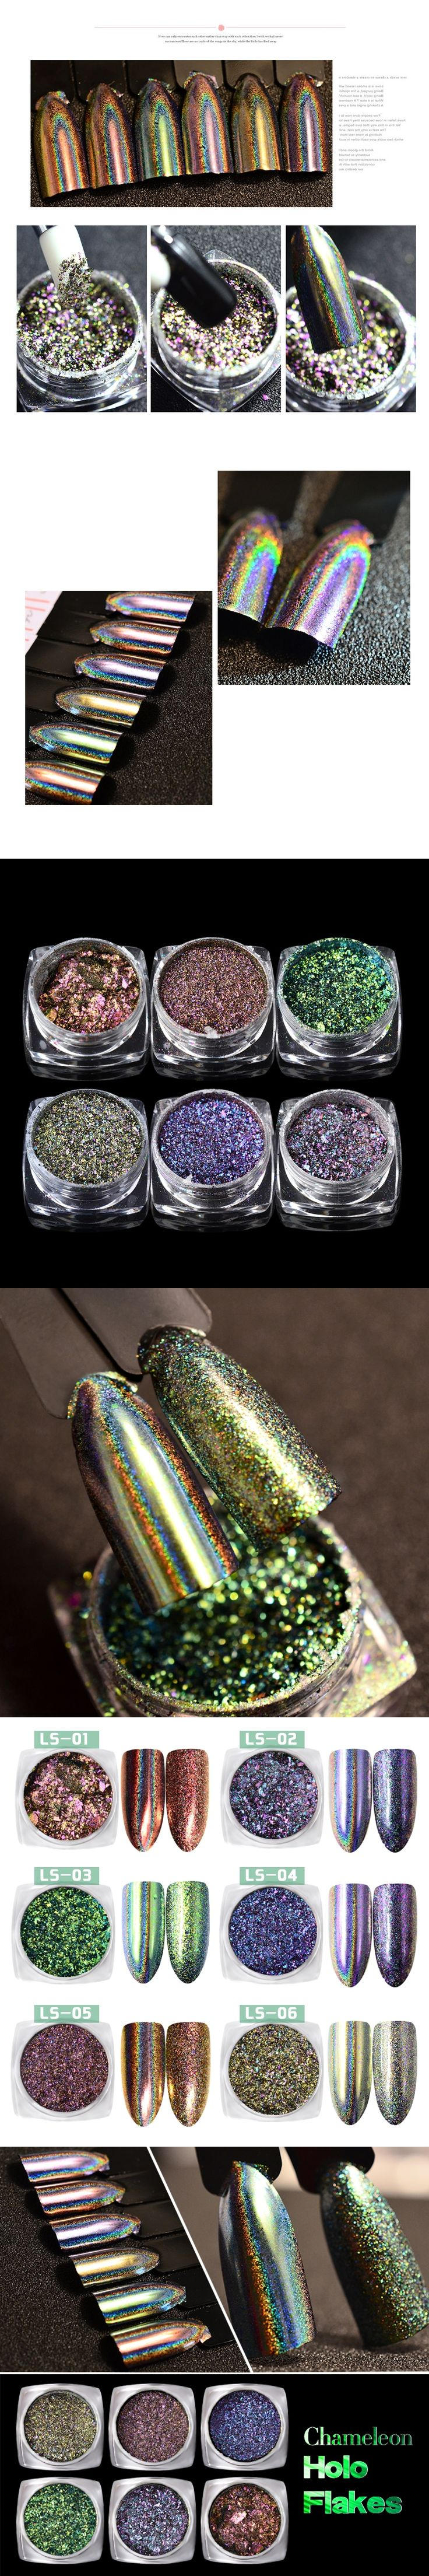 0.2g/box Laser Chameleon Holo Nail Art Flakes Powders Flakes Magic Mirror 2 Effects Holographic Nail Glitters Pigment